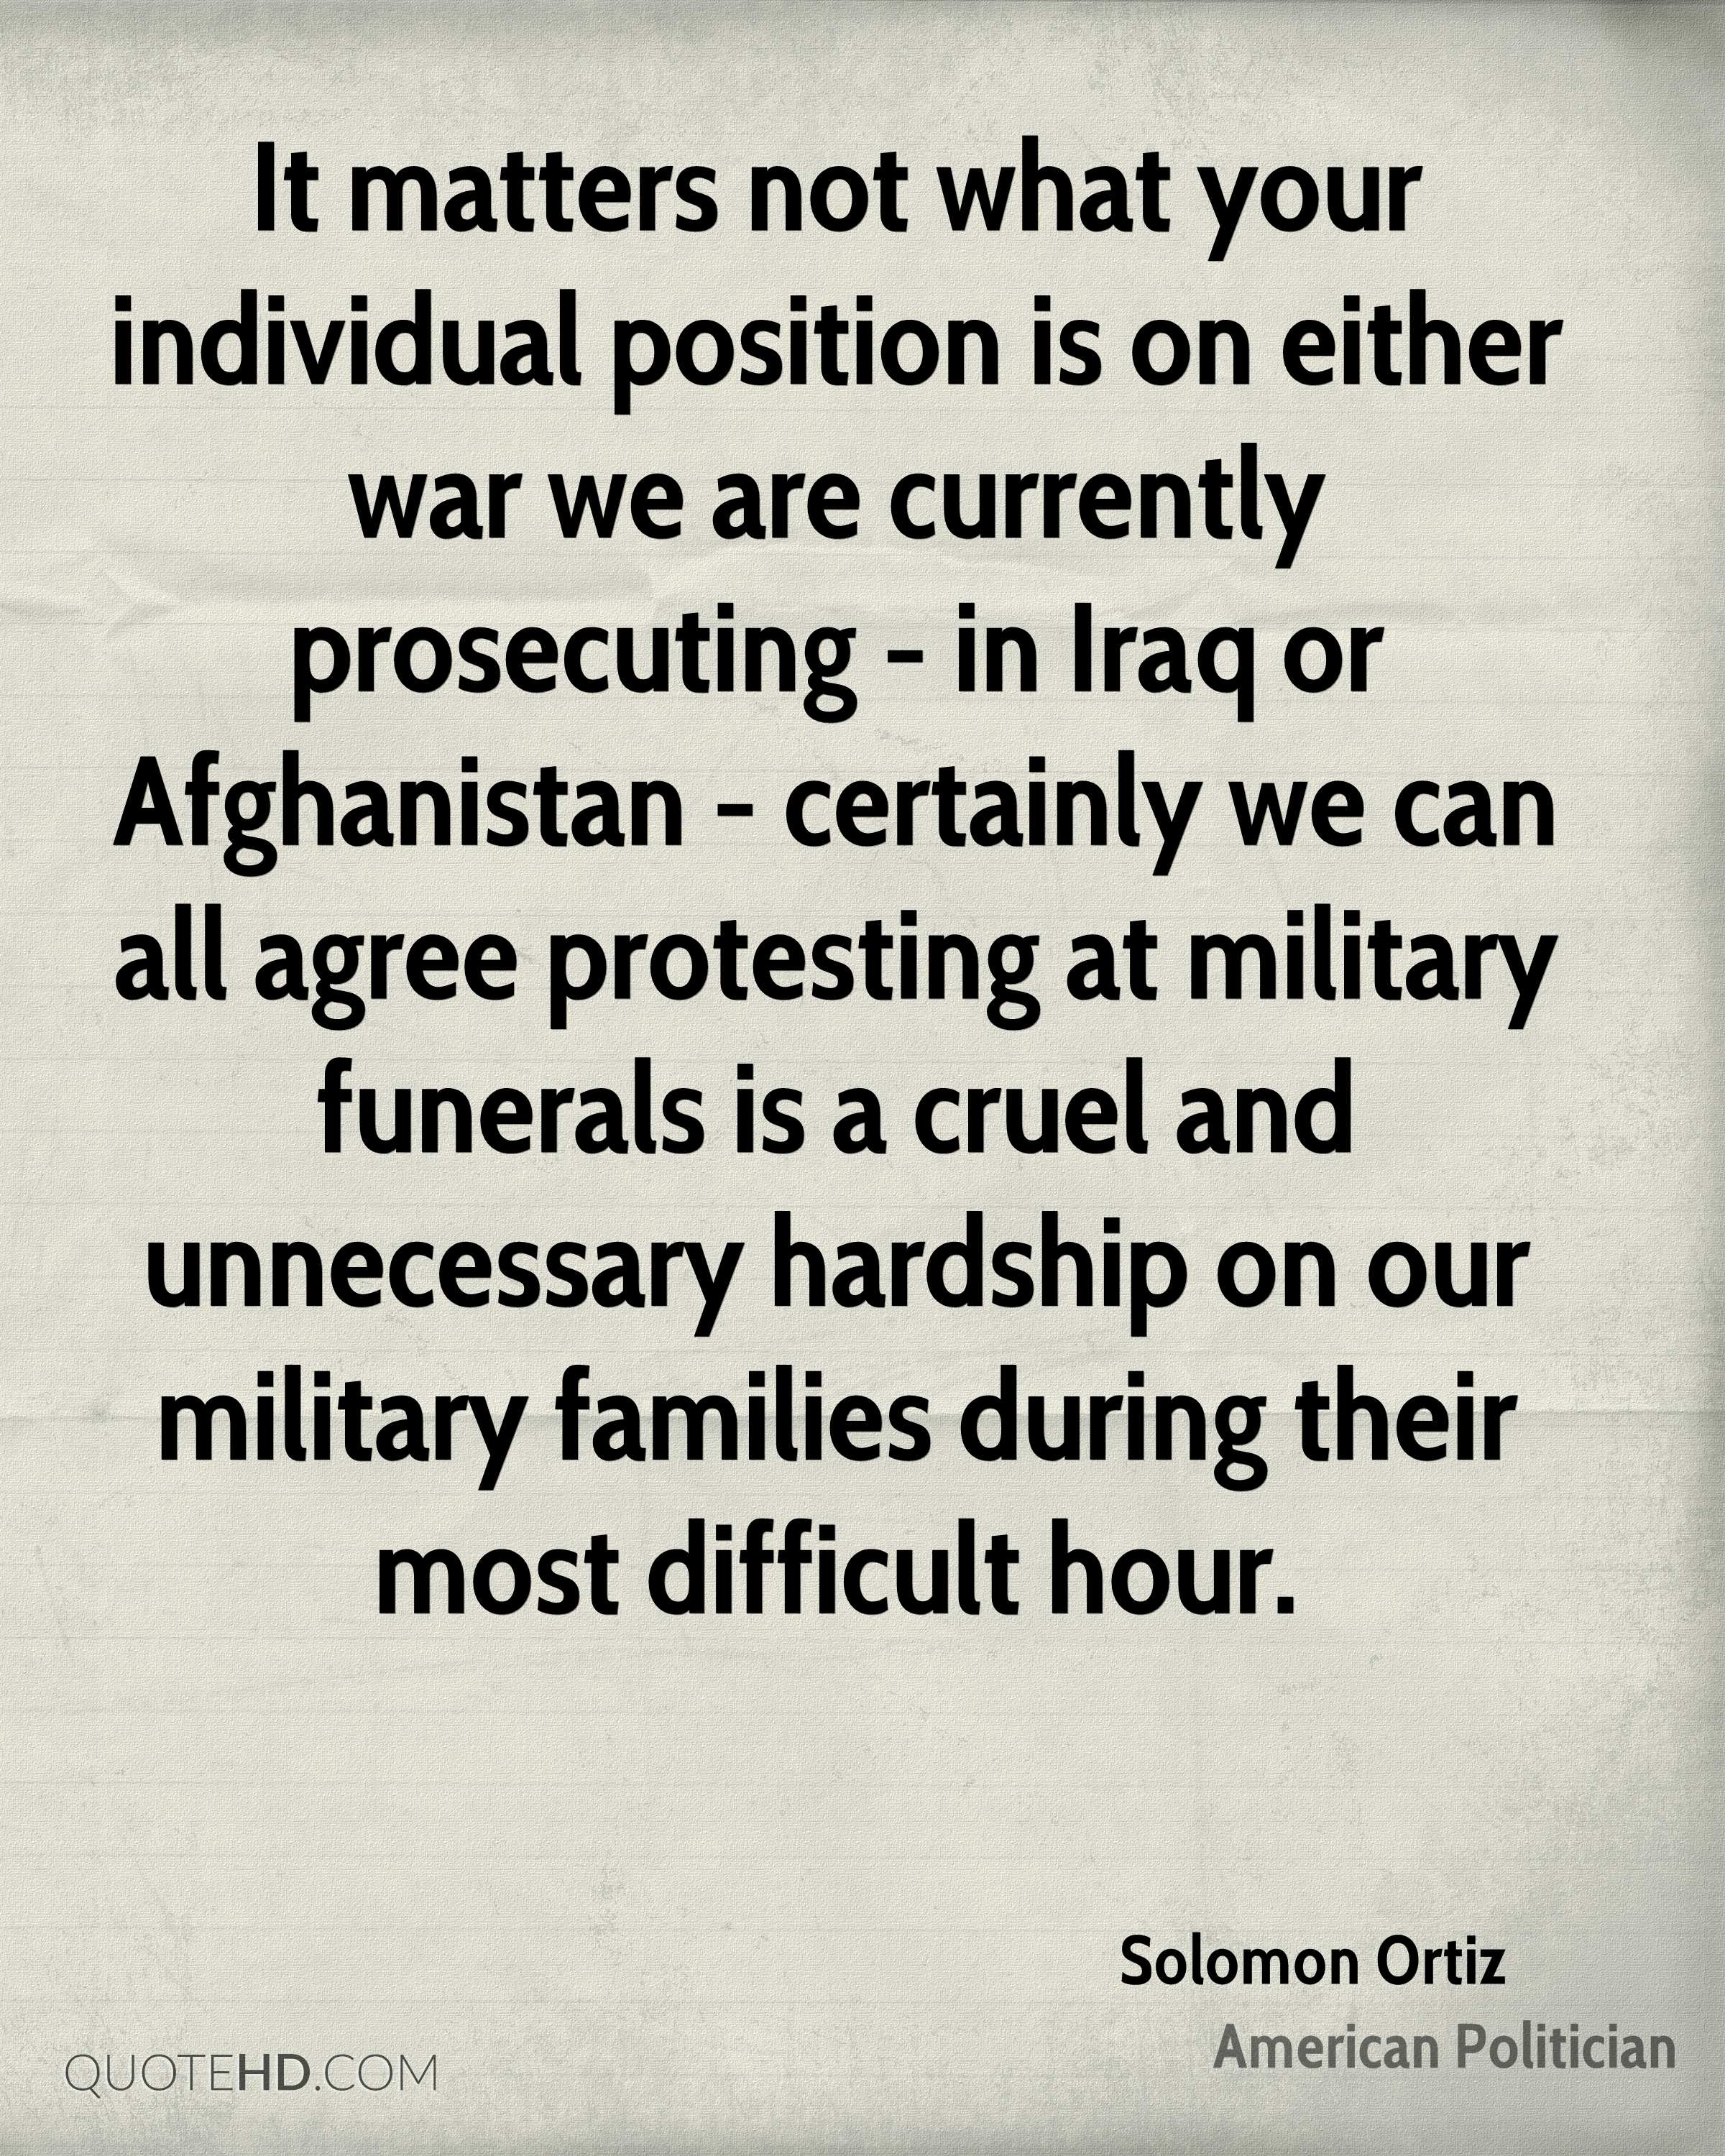 Quotes For Funerals Funerals Quotes  Page 1  Quotehd